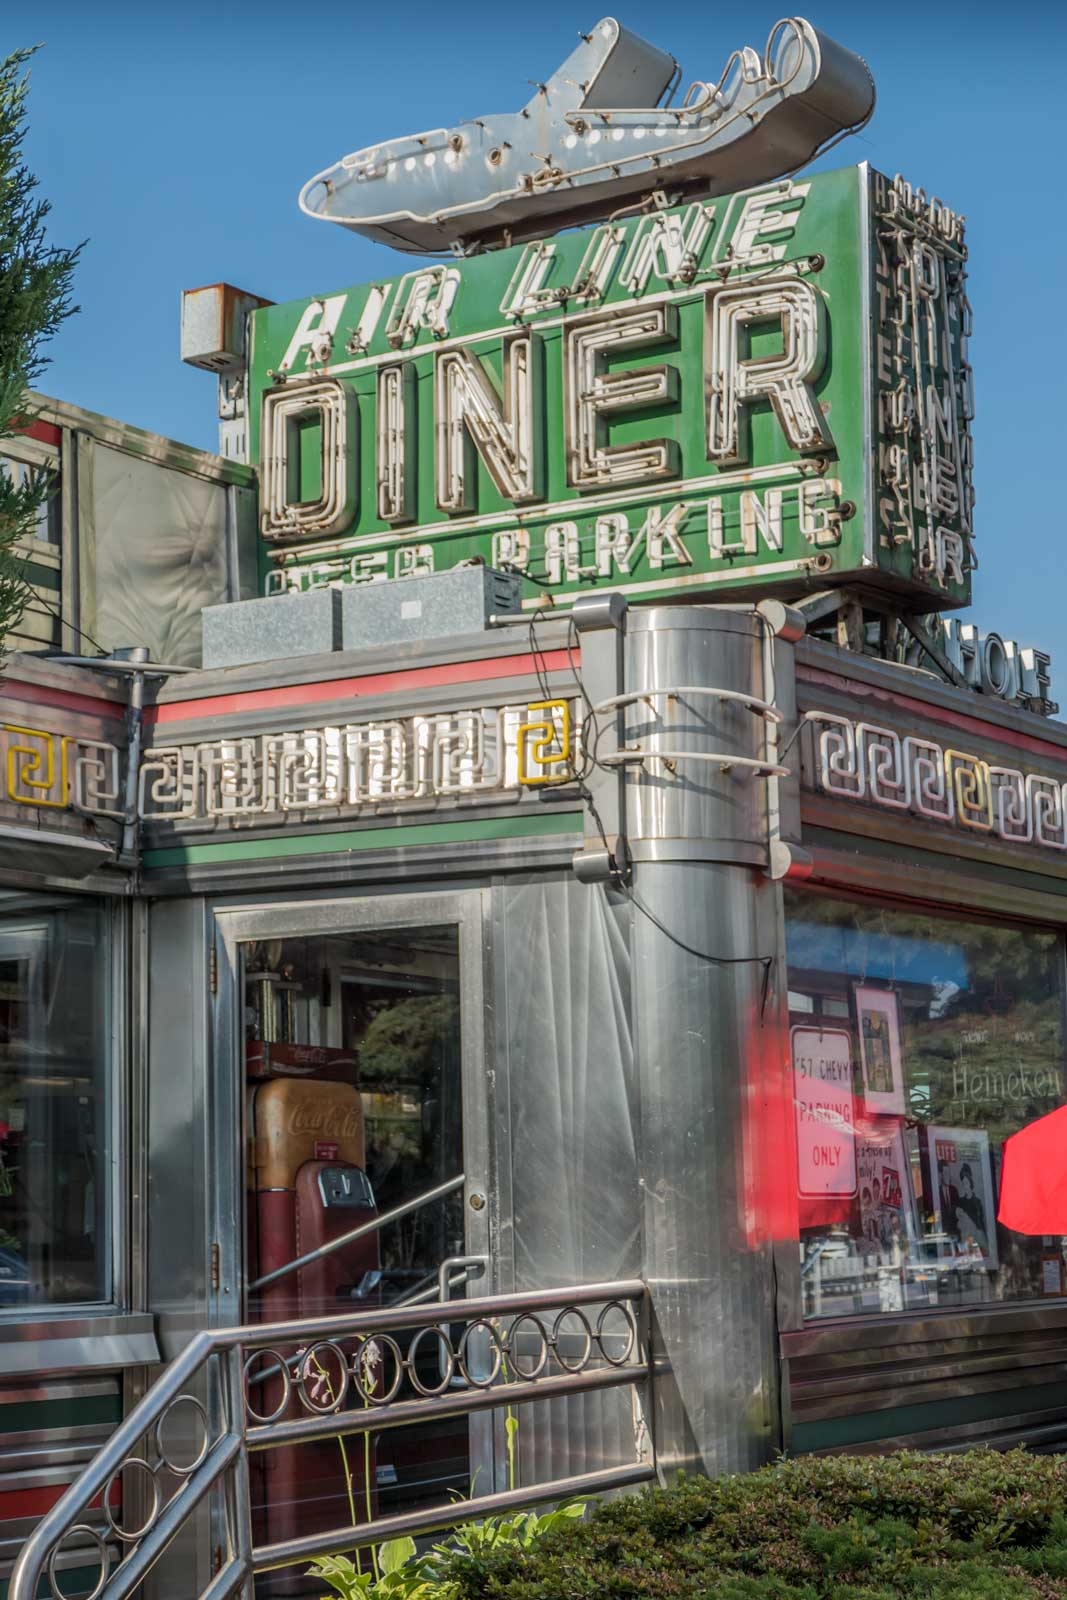 Jackson Hole Airline Diner Queens New York City